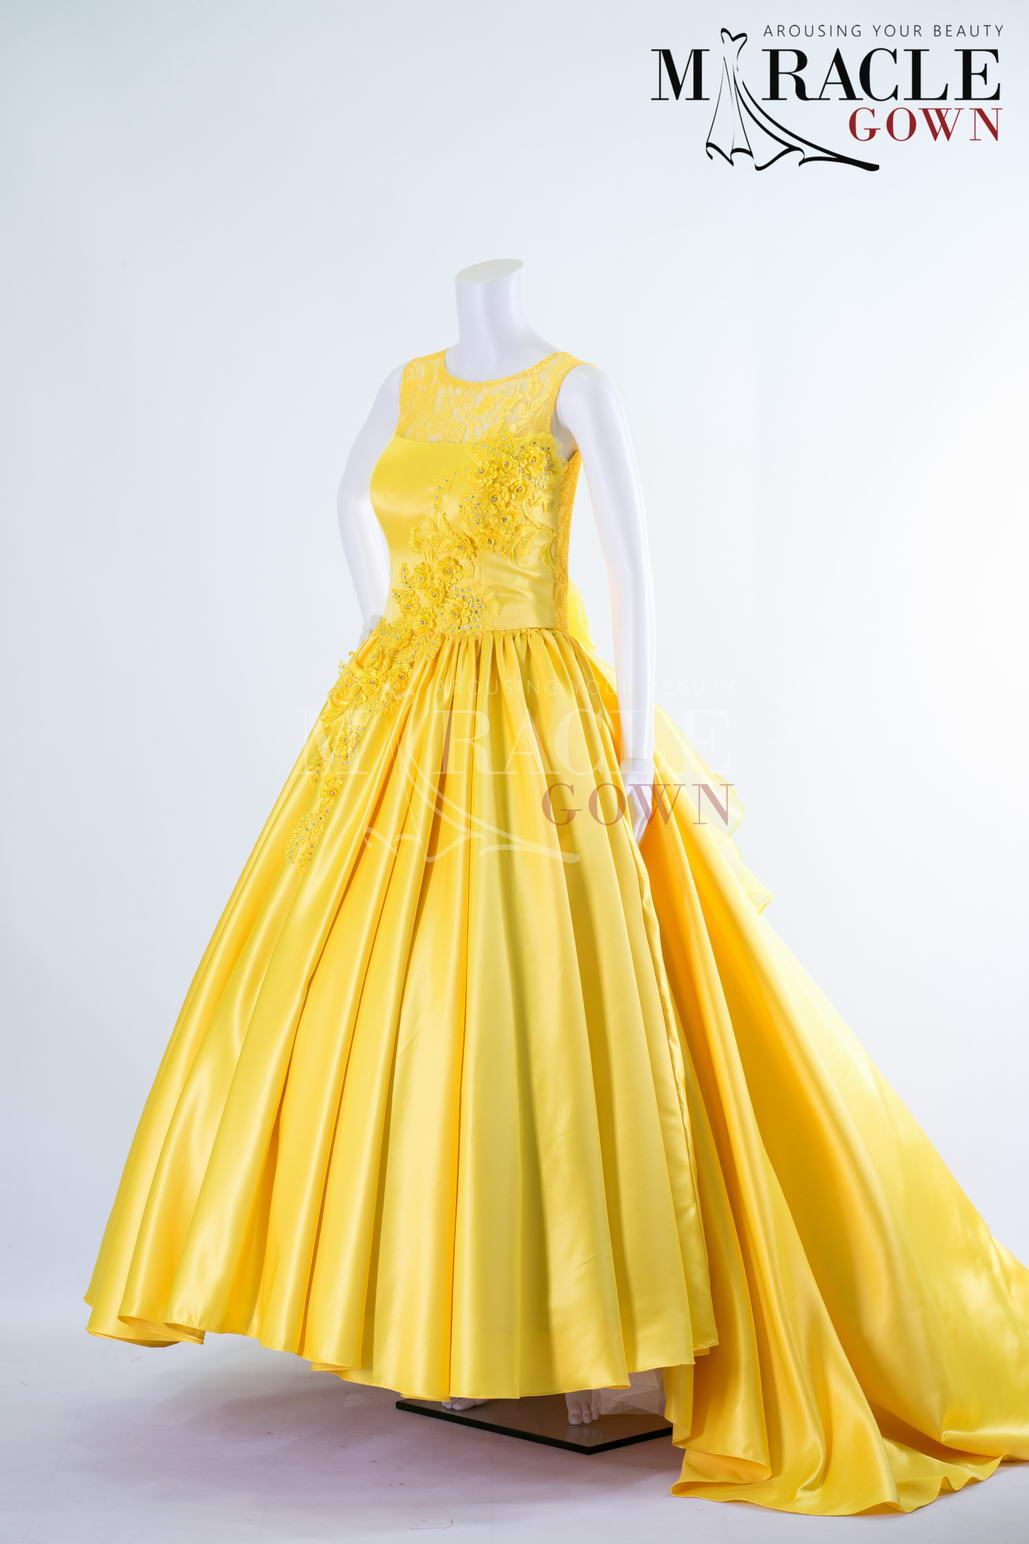 Sewa Gaun Surabaya - Miracle Gown - The golden yellow embellishment